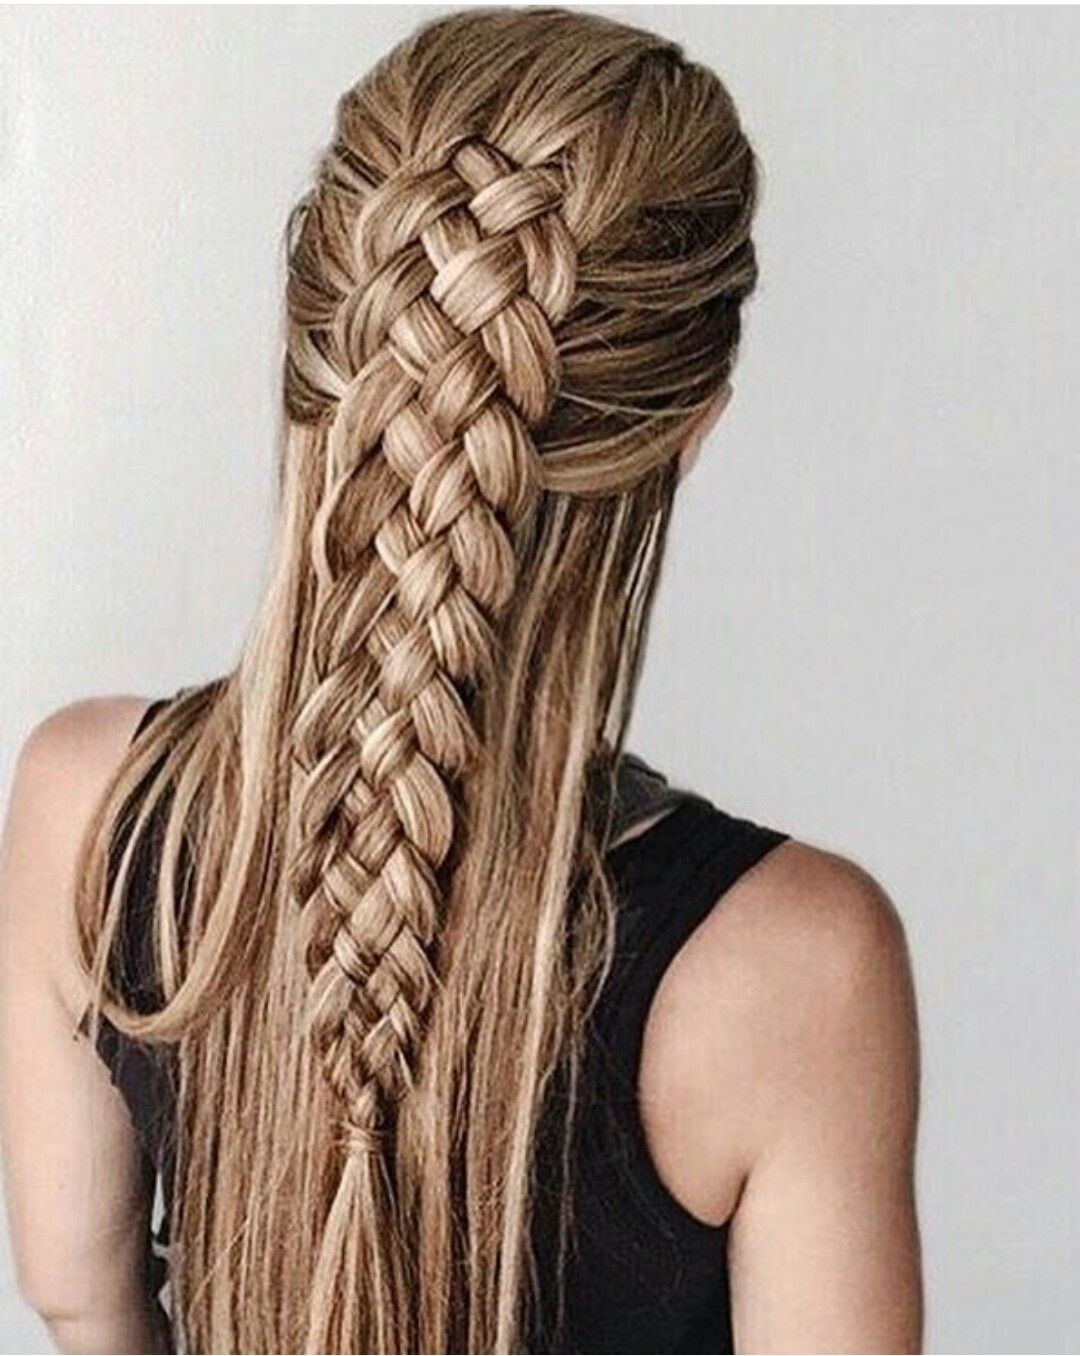 Pin by kailey lipman on cute hair pinterest hair styles hair